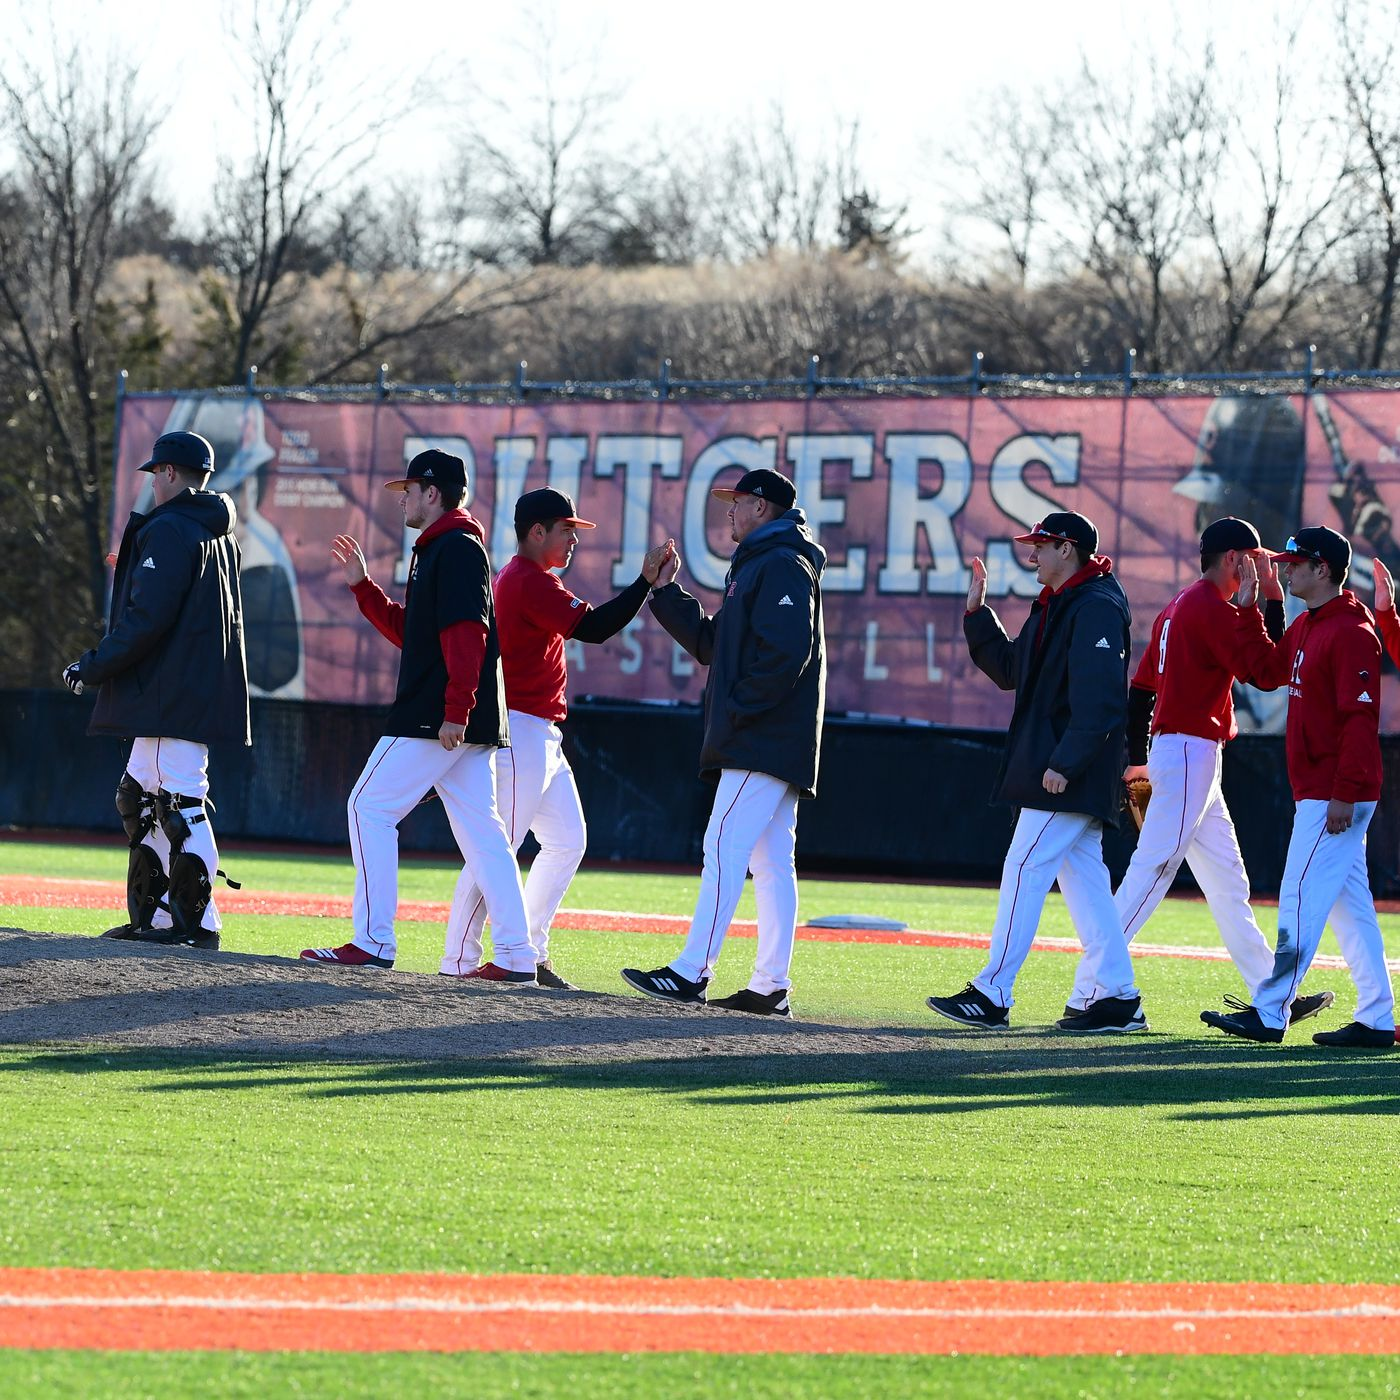 newest a0b32 38de4 Rutgers Baseball wins series against Purdue - On the Banks